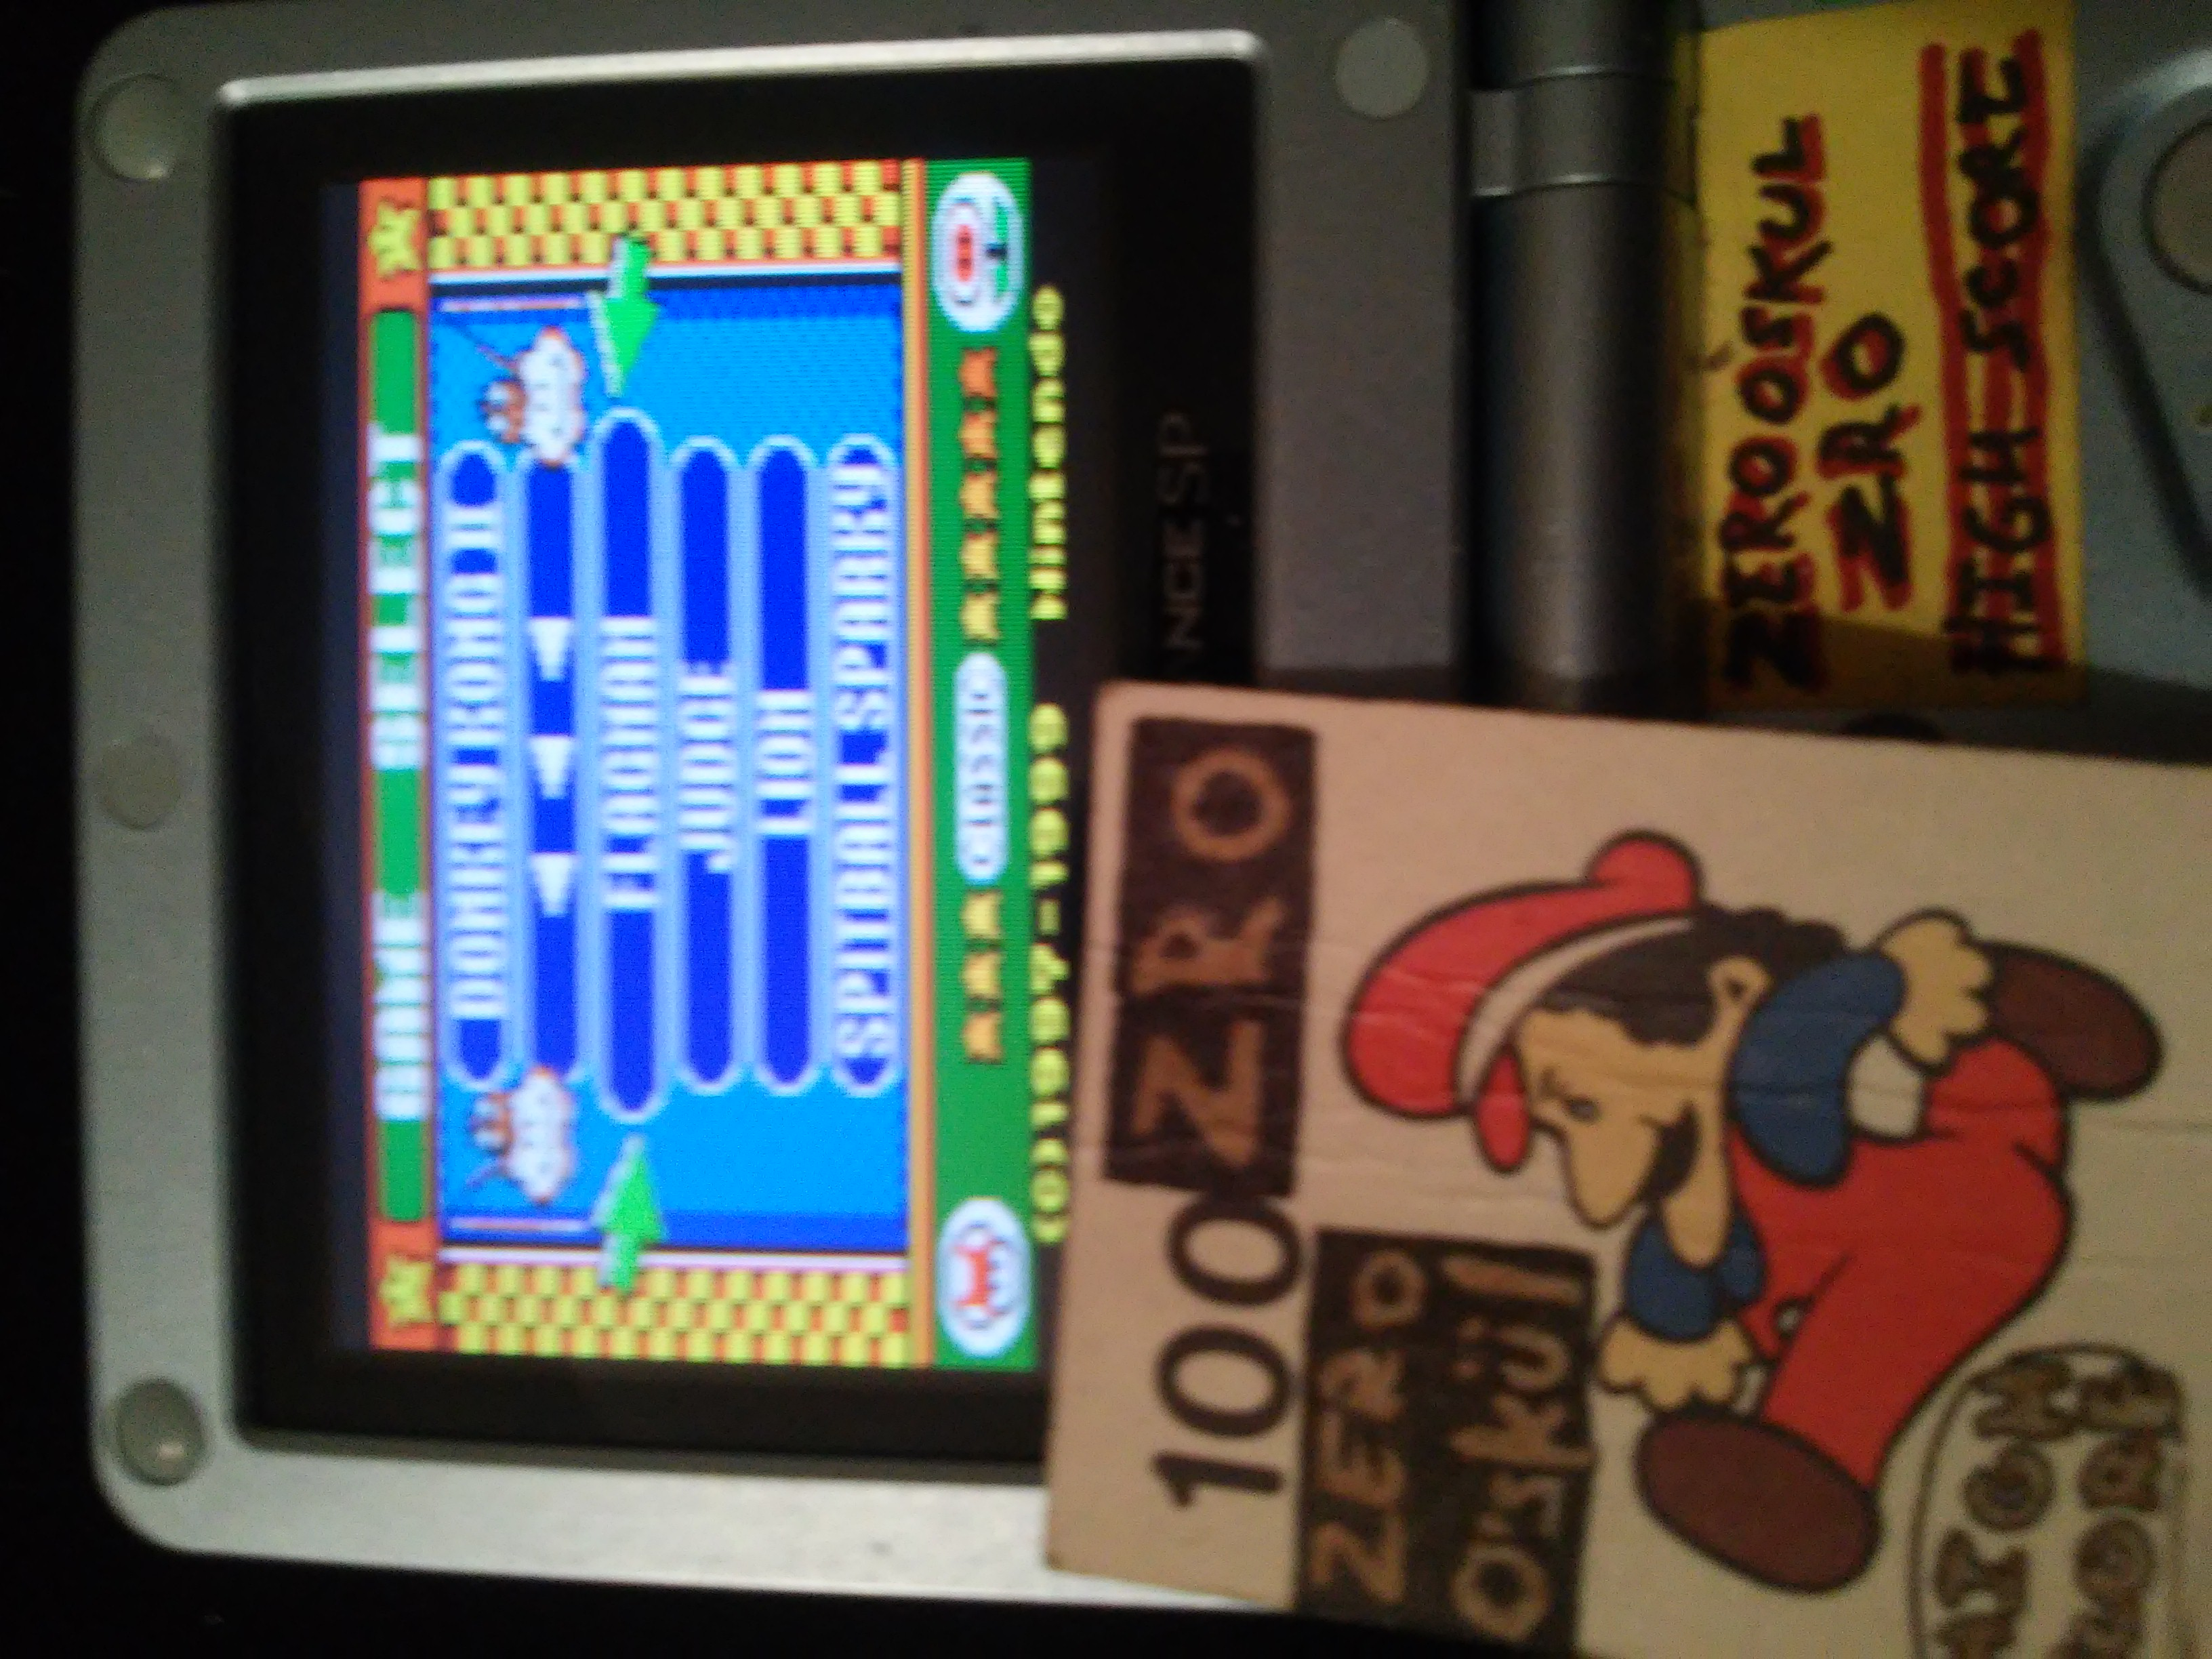 Game & Watch Gallery 3: Flagman [Classic: Game B] 69 points